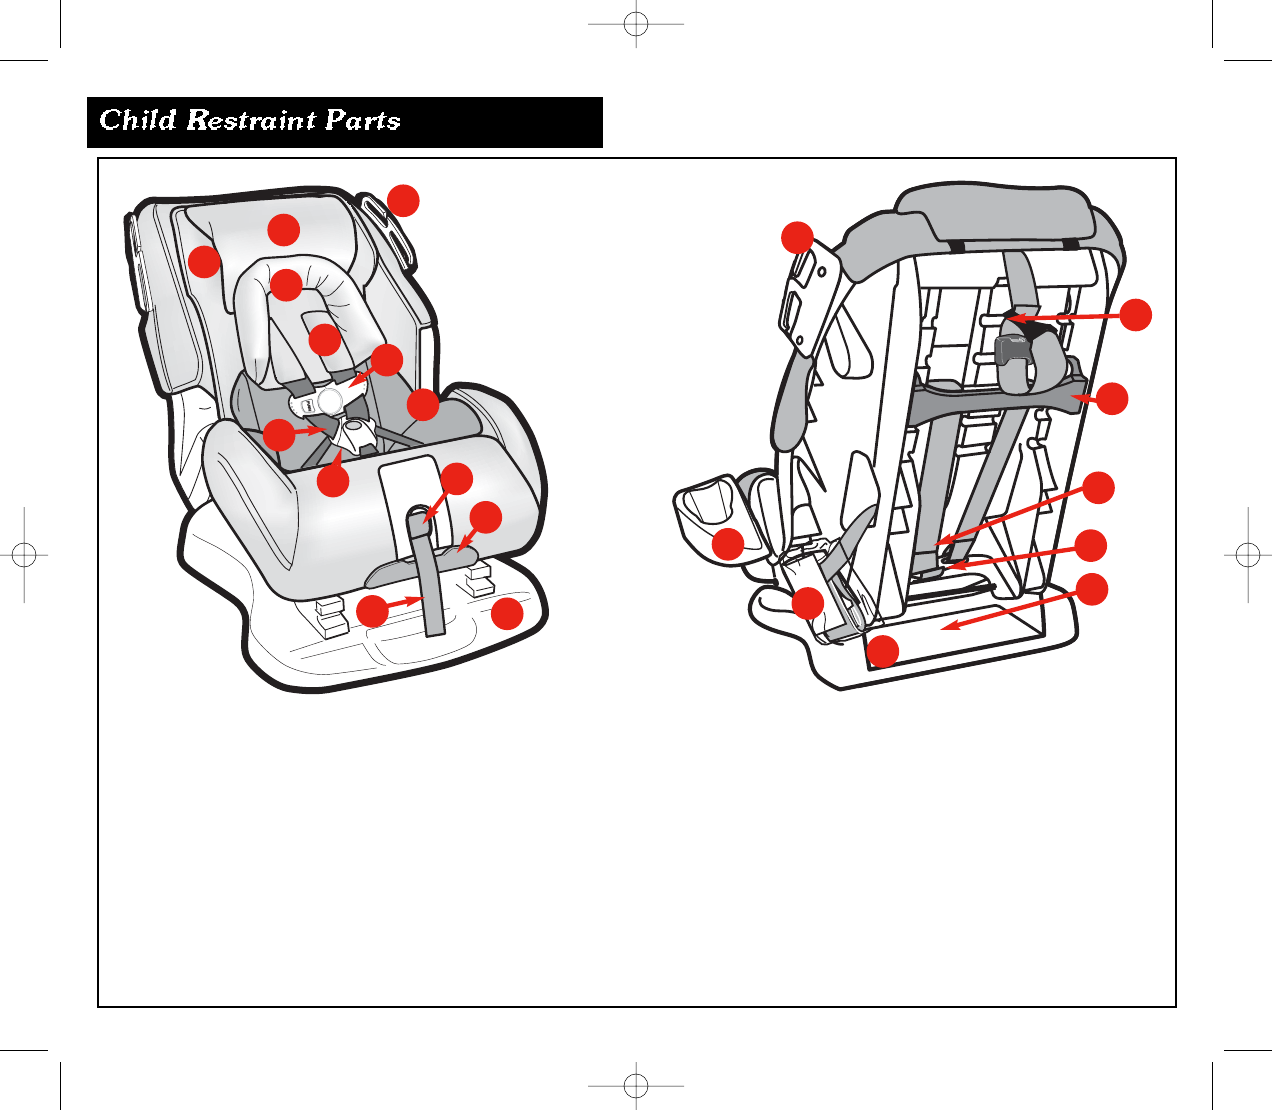 page 6 of eddie bauer car seat 22 750 user guide. Black Bedroom Furniture Sets. Home Design Ideas